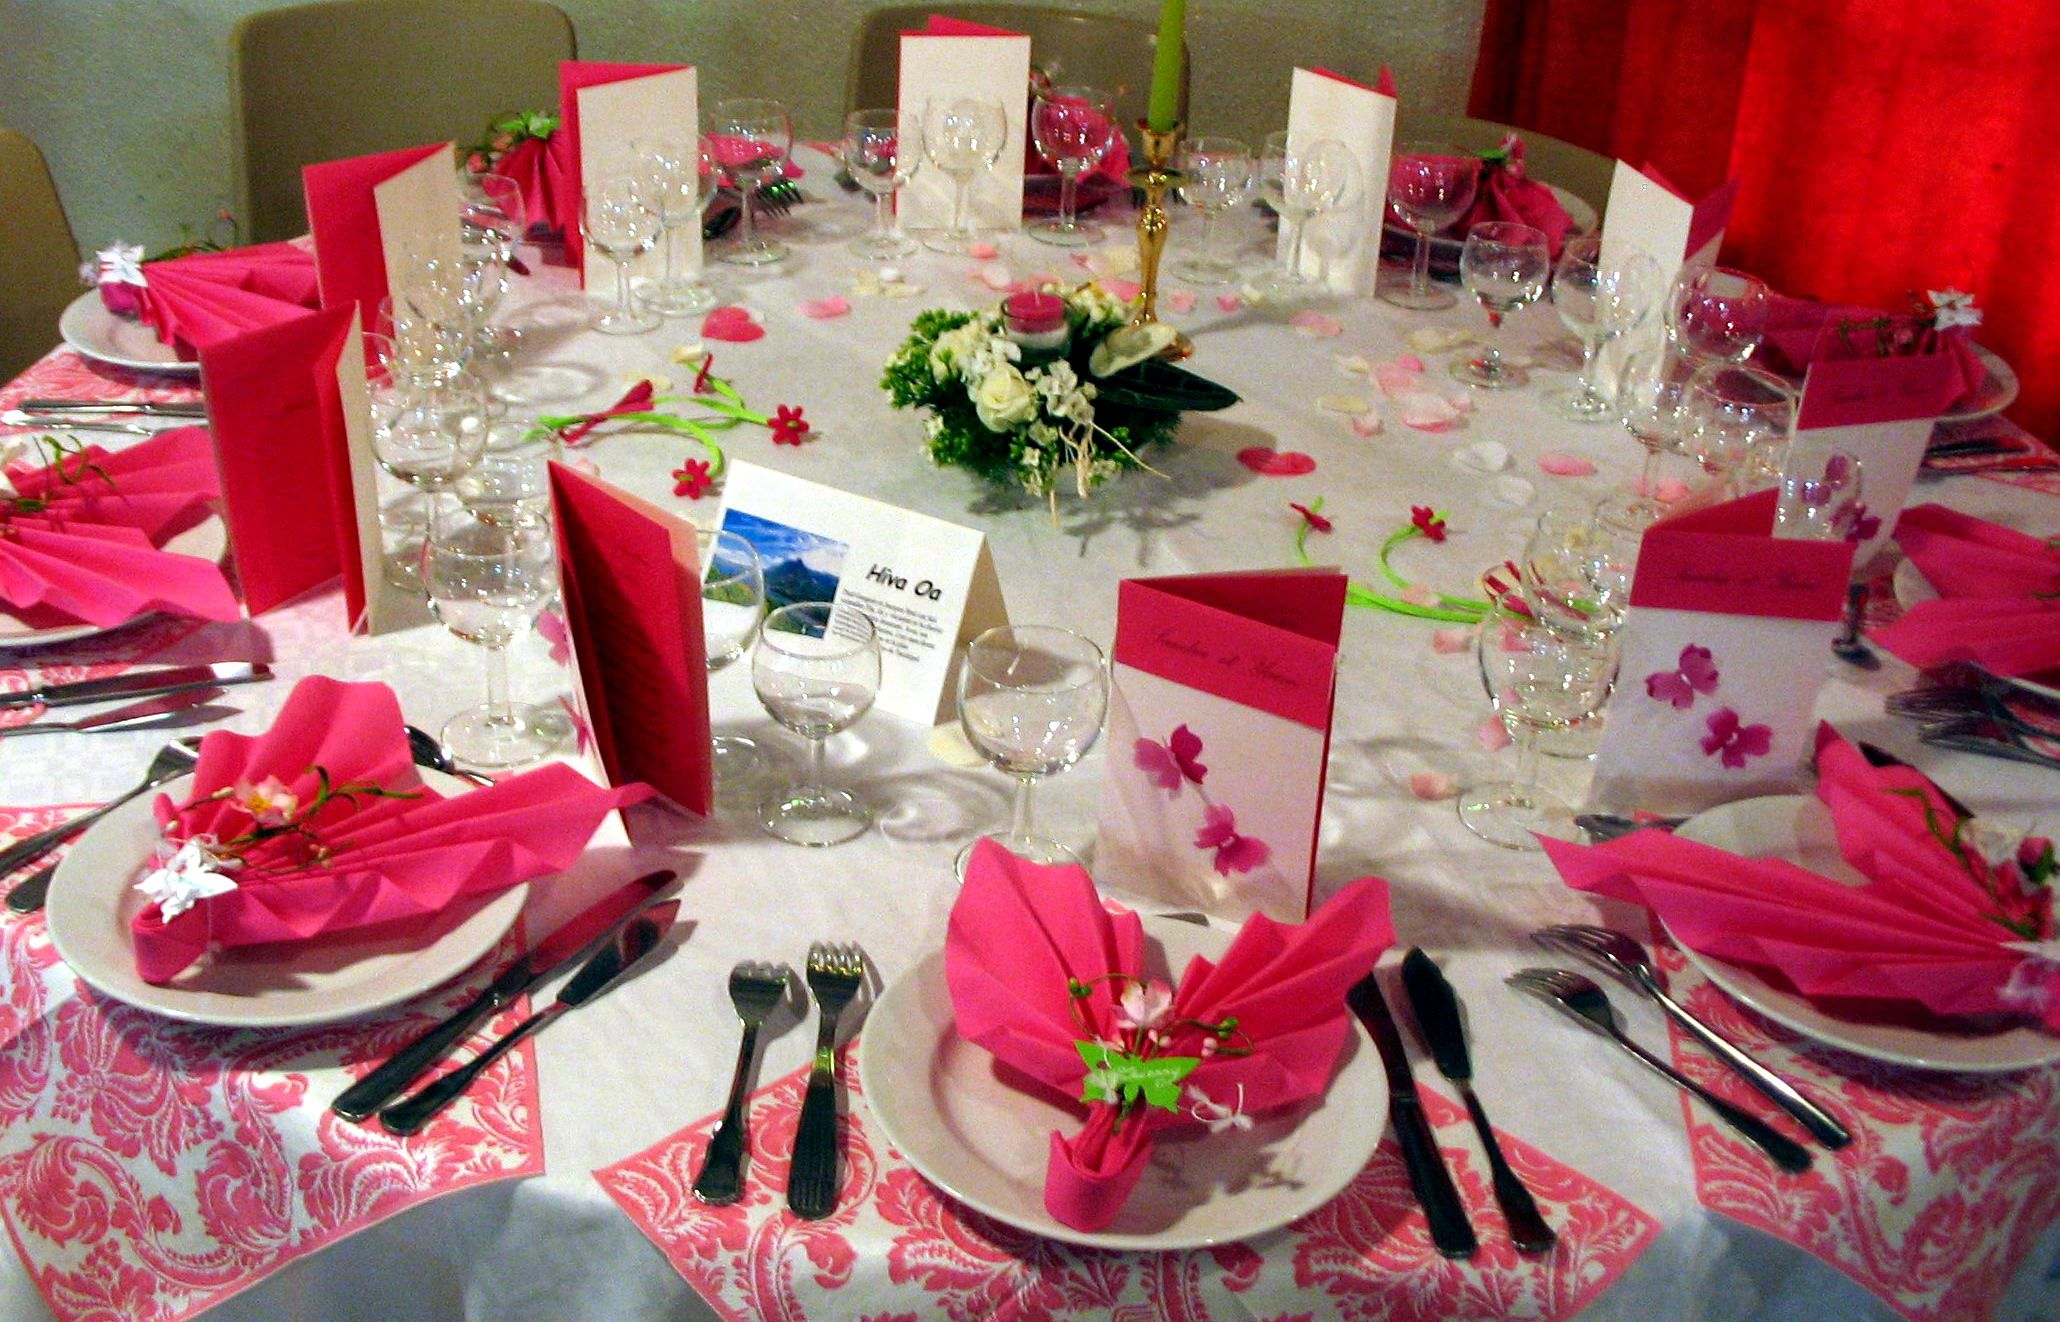 D coration table de mariage photo d co de table mariage rouge et blanc we - Decoration table de mariage a faire soi meme ...